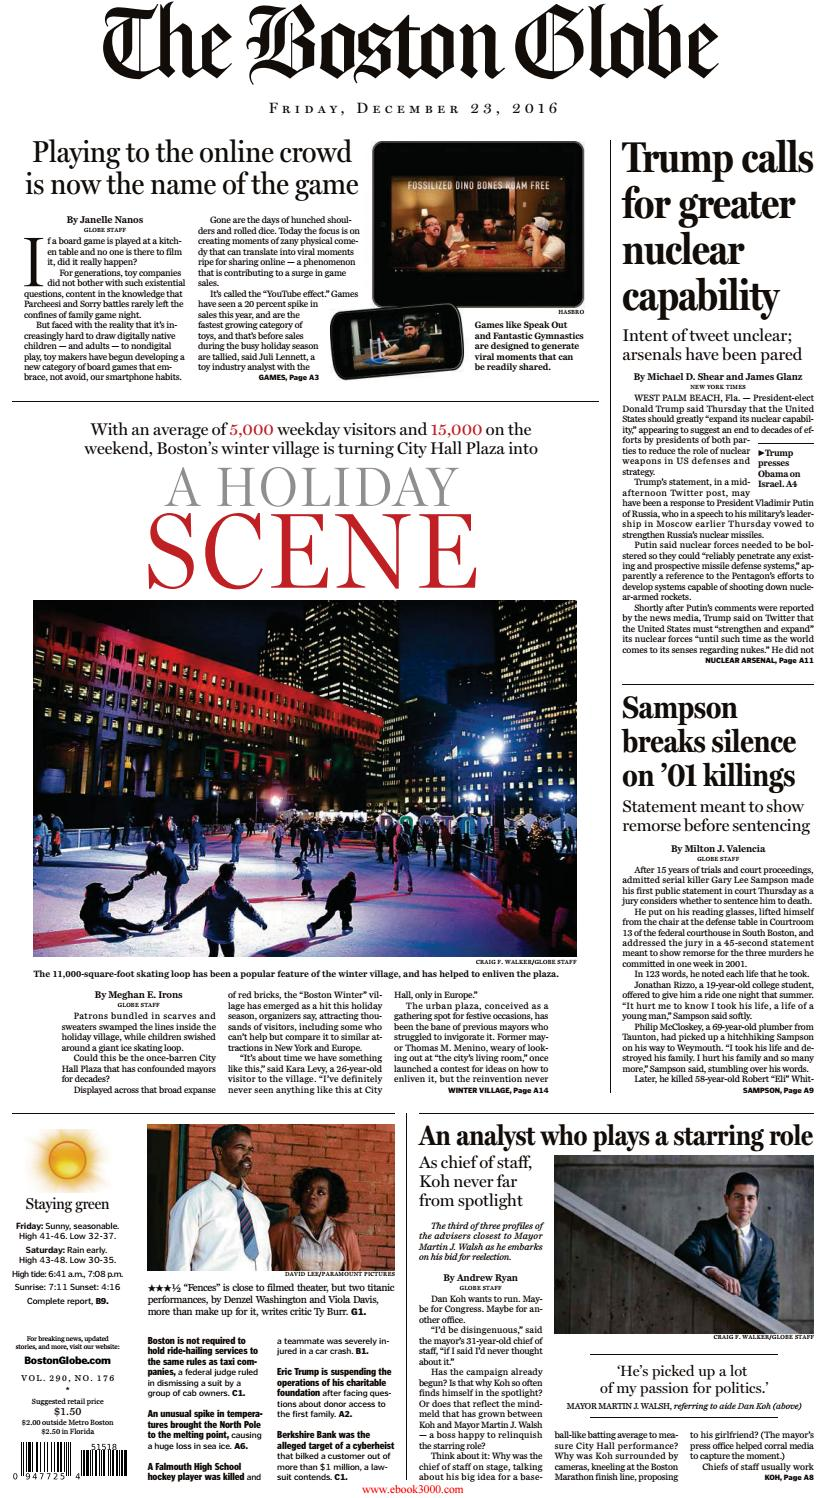 60c8ac59f41 The boston globe december 23 2016 by 24news - issuu